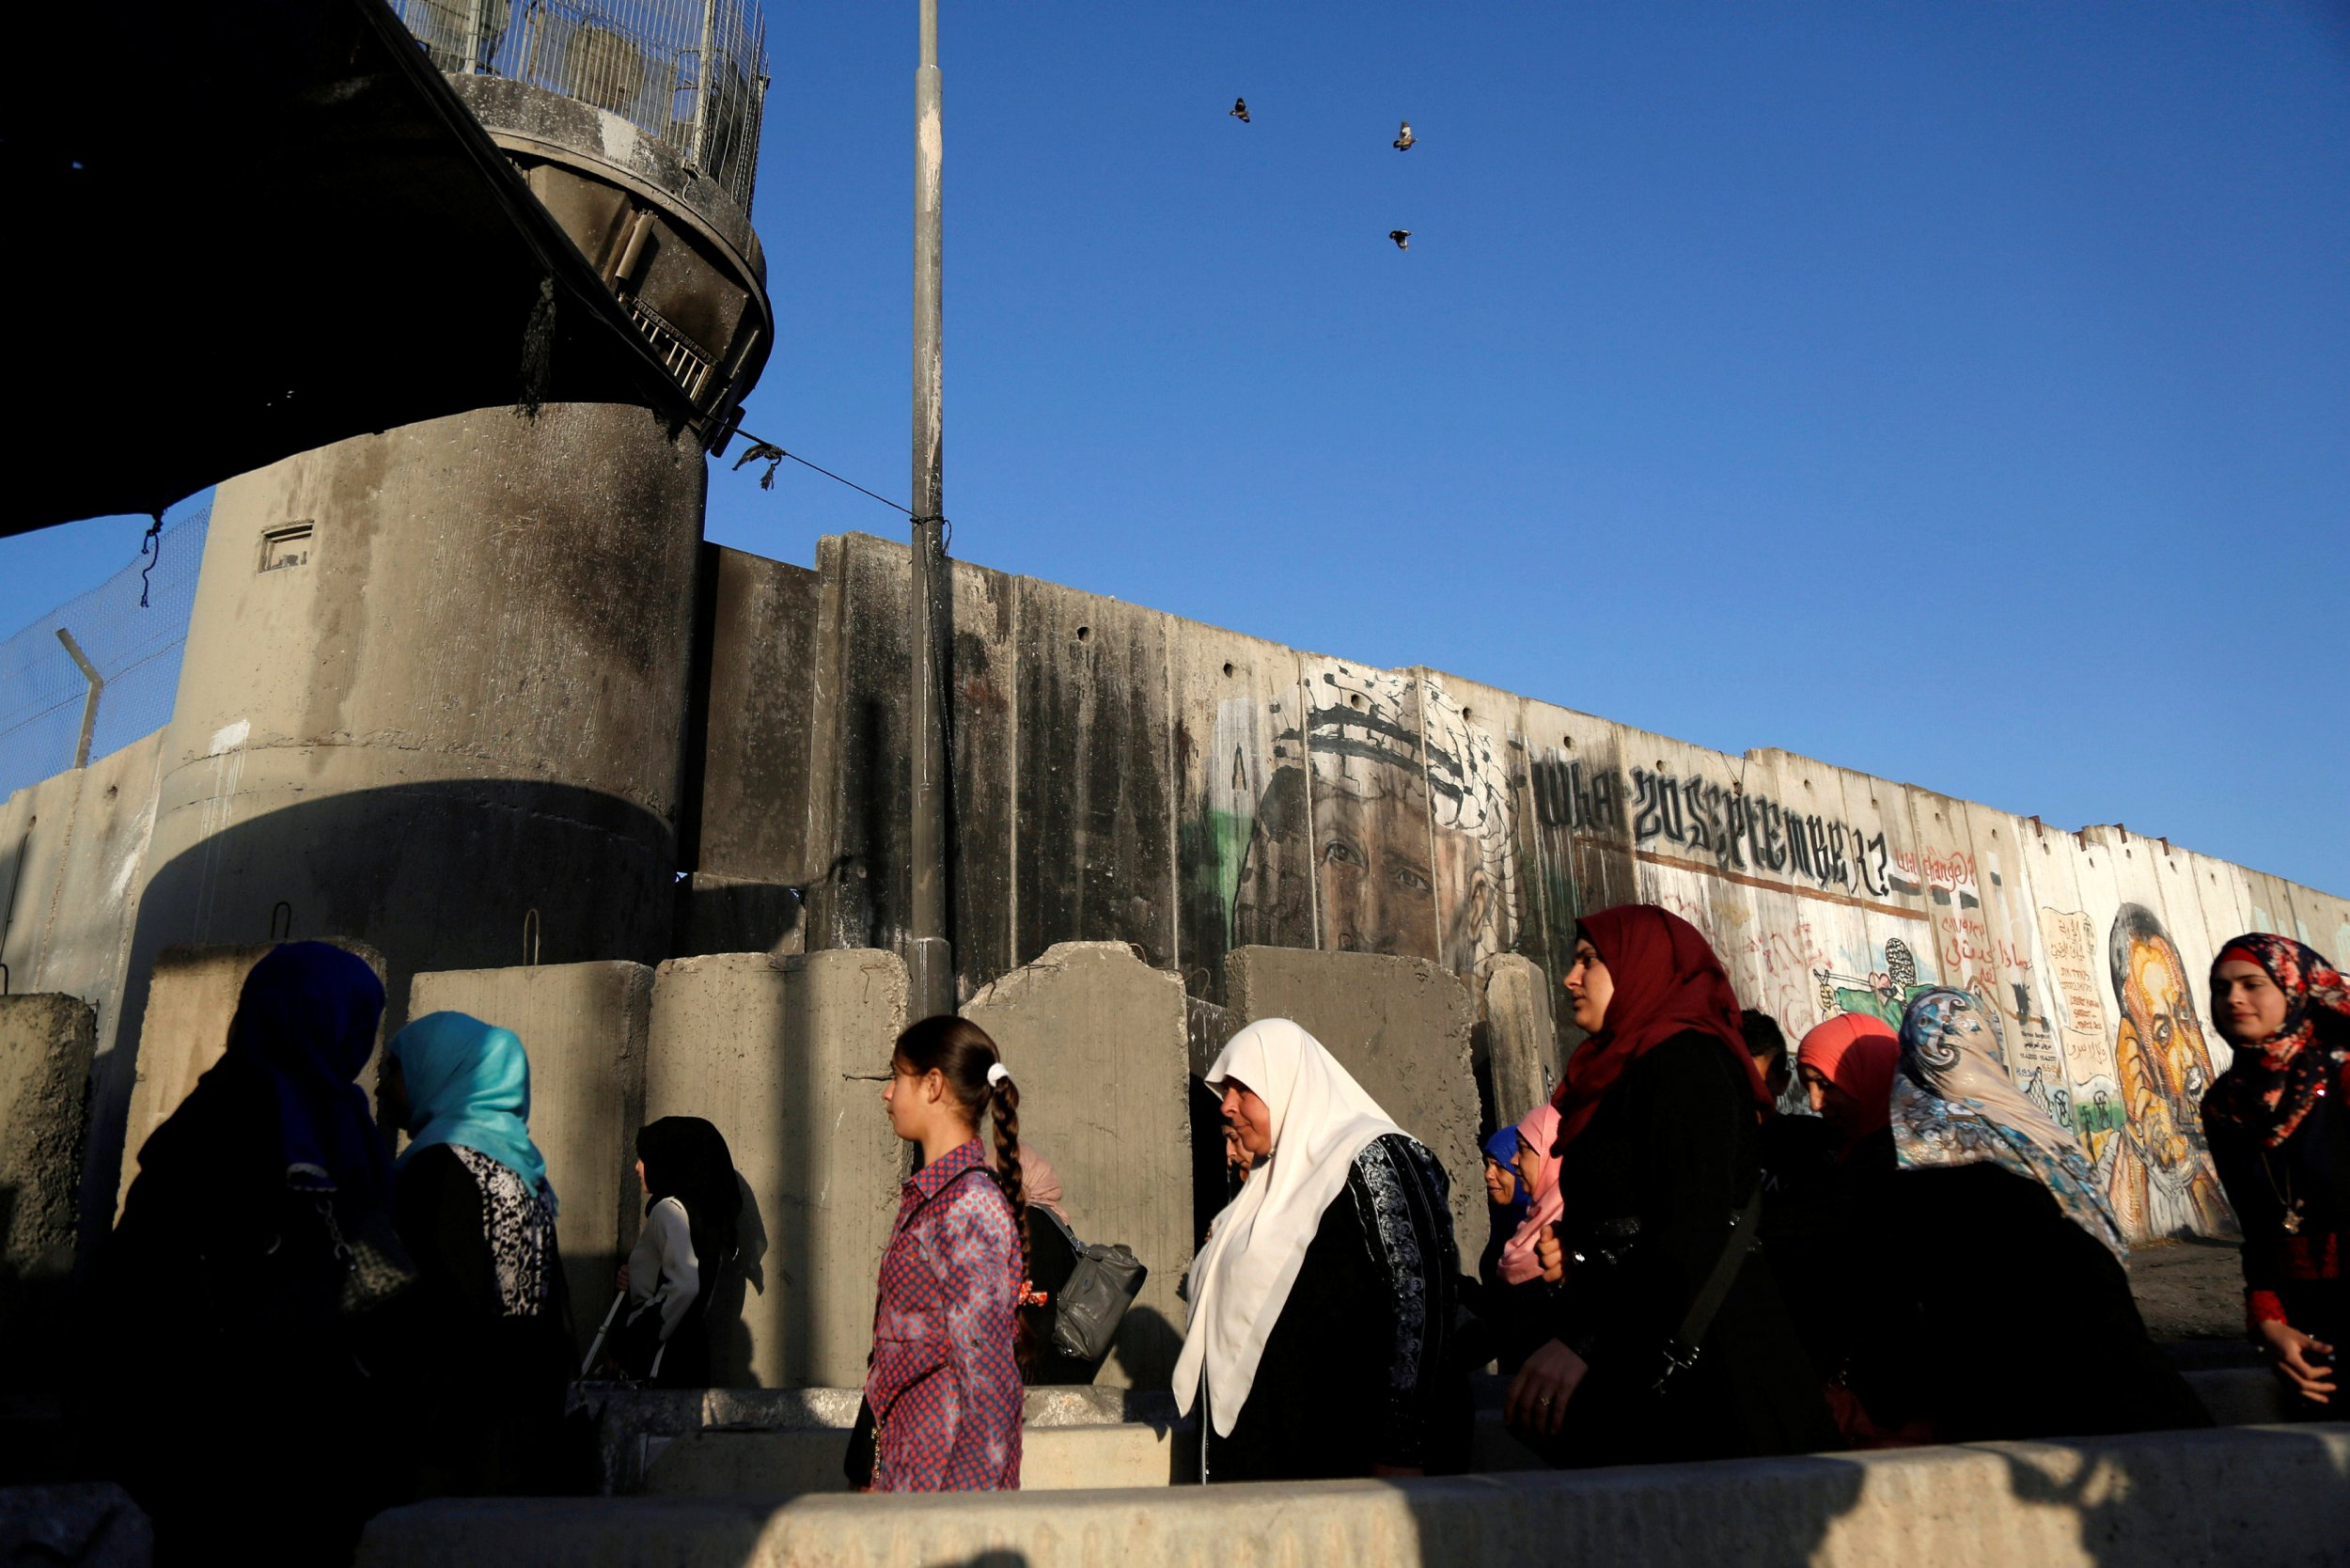 Israel checkpoint